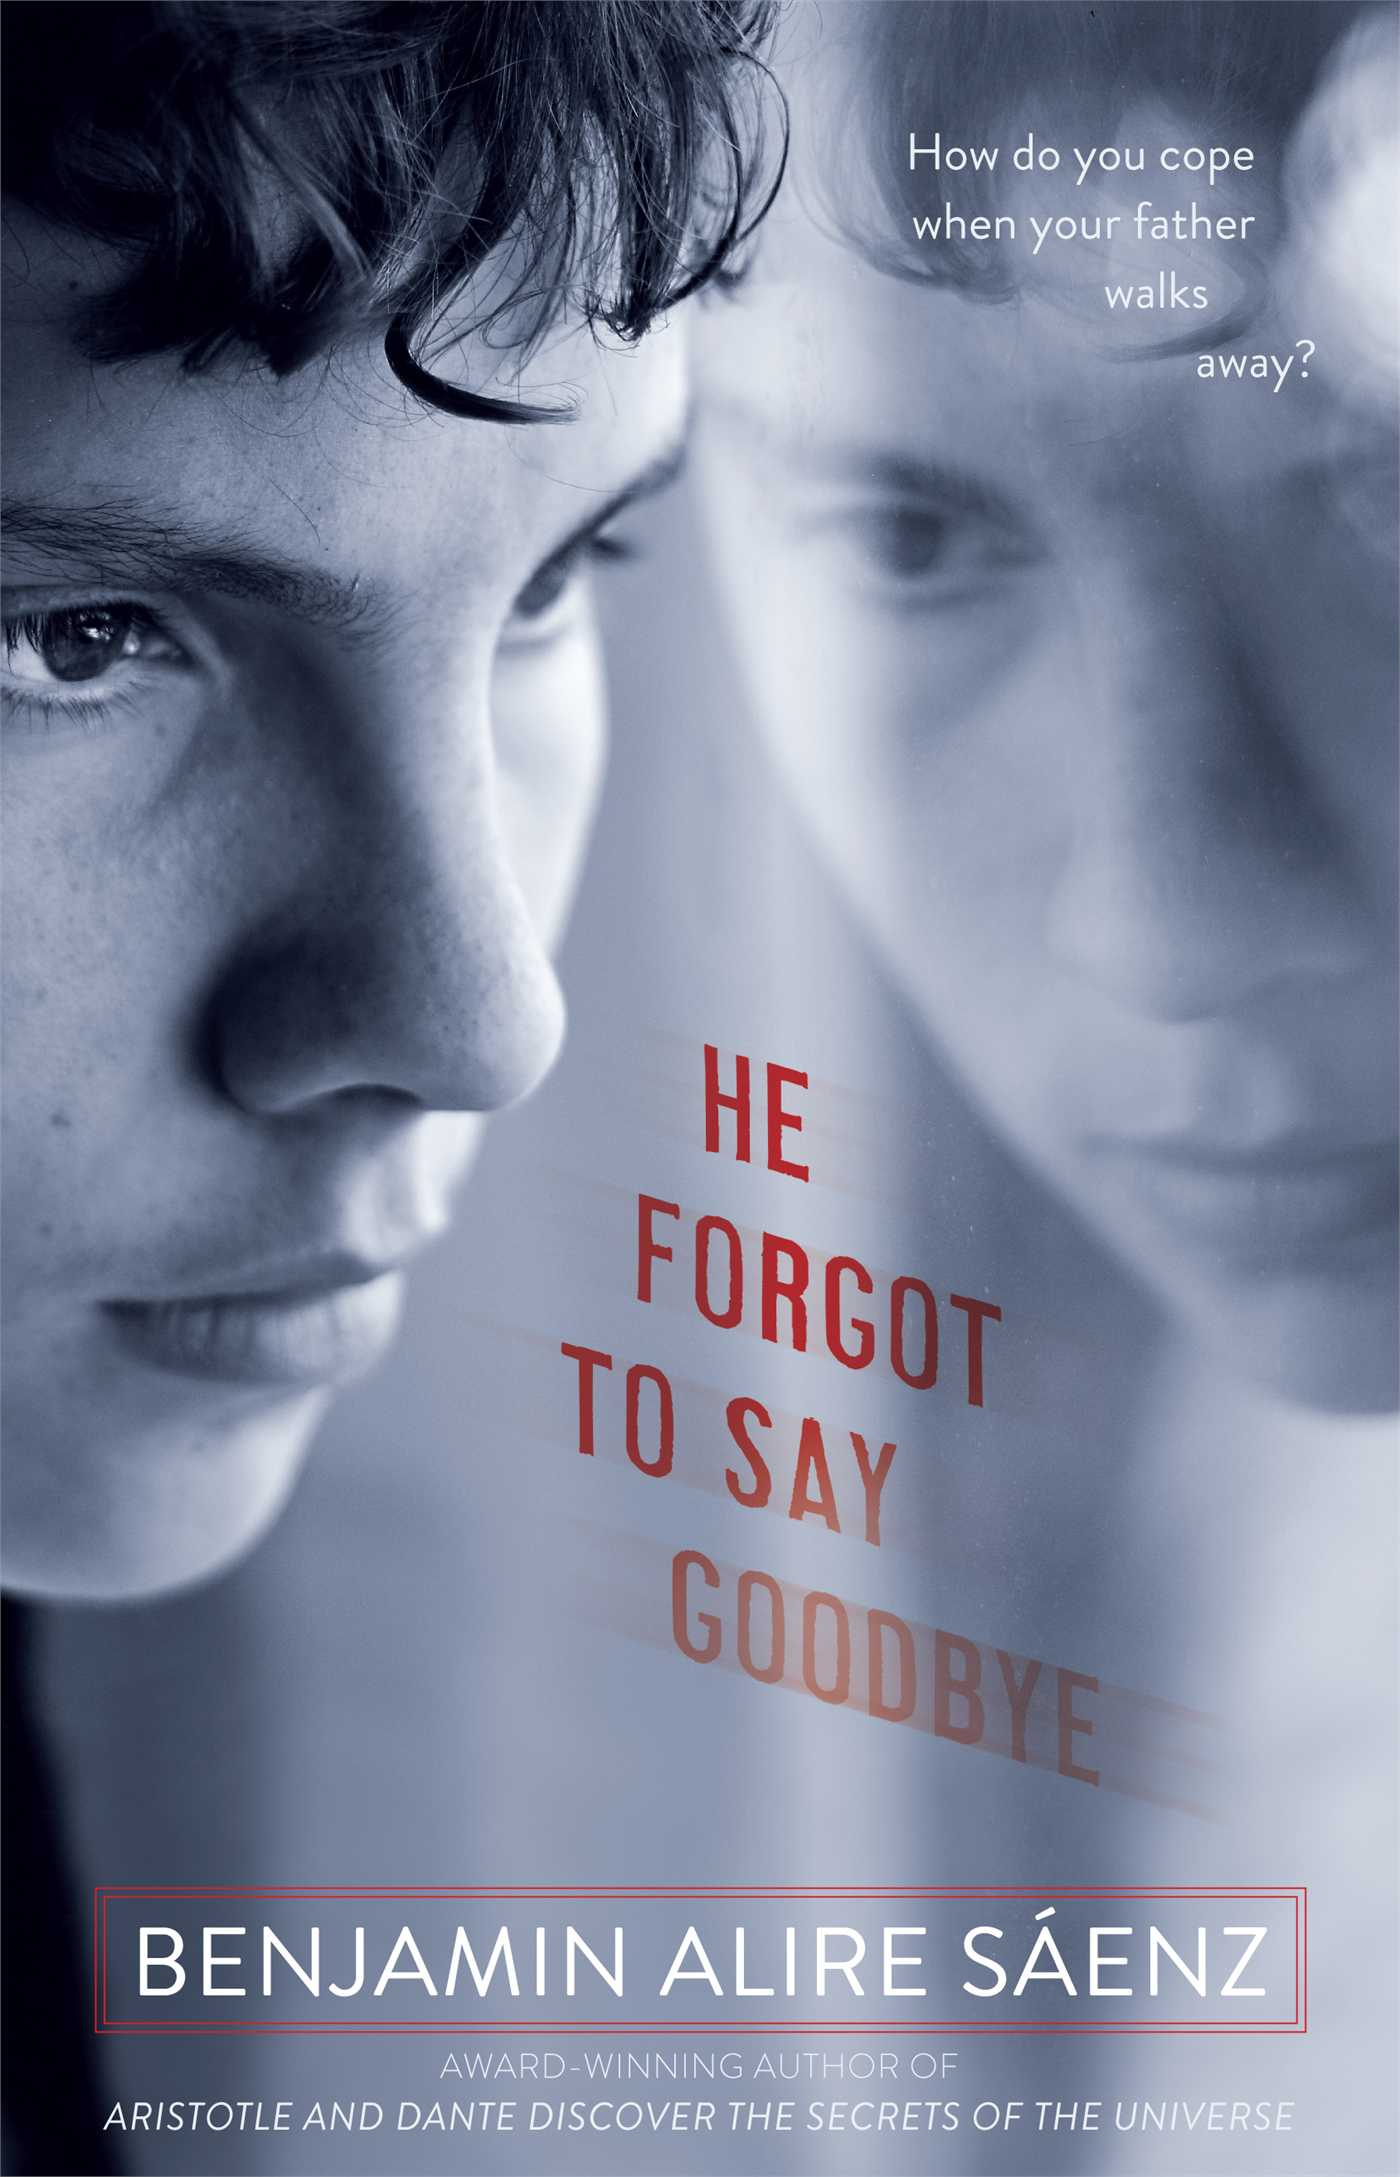 He-forgot-to-say-goodbye-9781416994343_hr